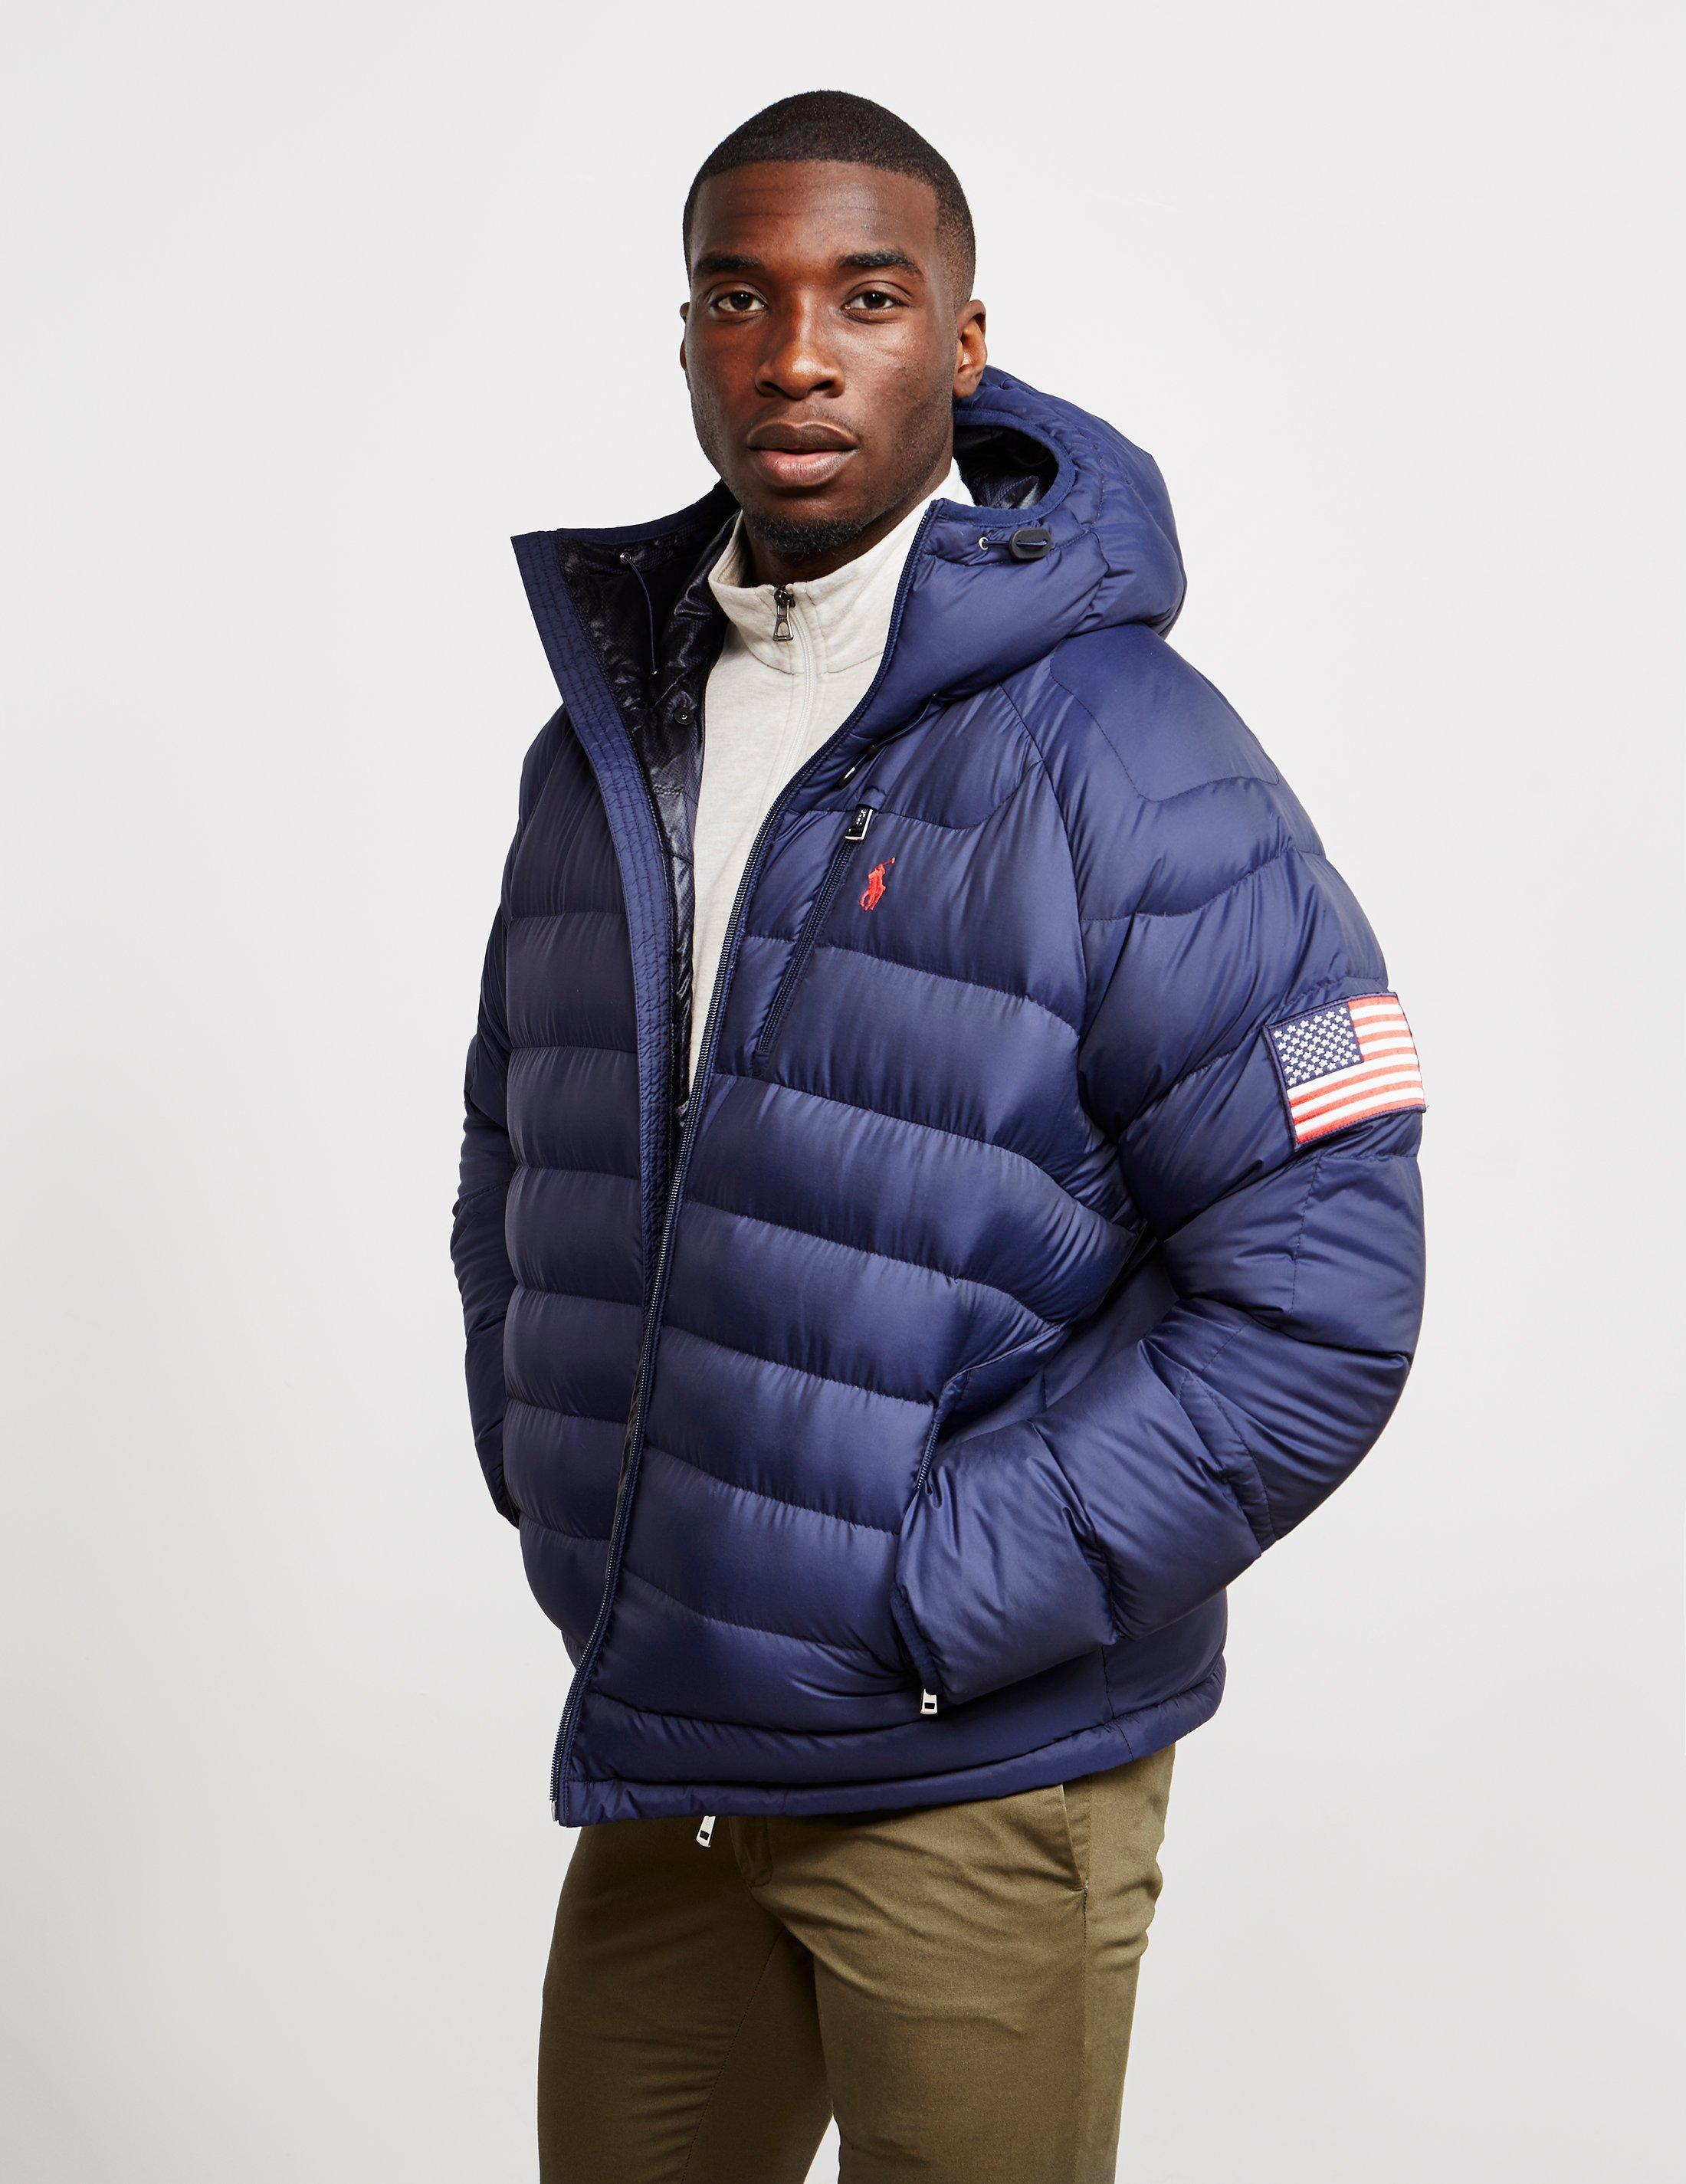 998cbe380cba Lyst - Polo Ralph Lauren Glacier Heated Down Jacket Navy Blue in ...